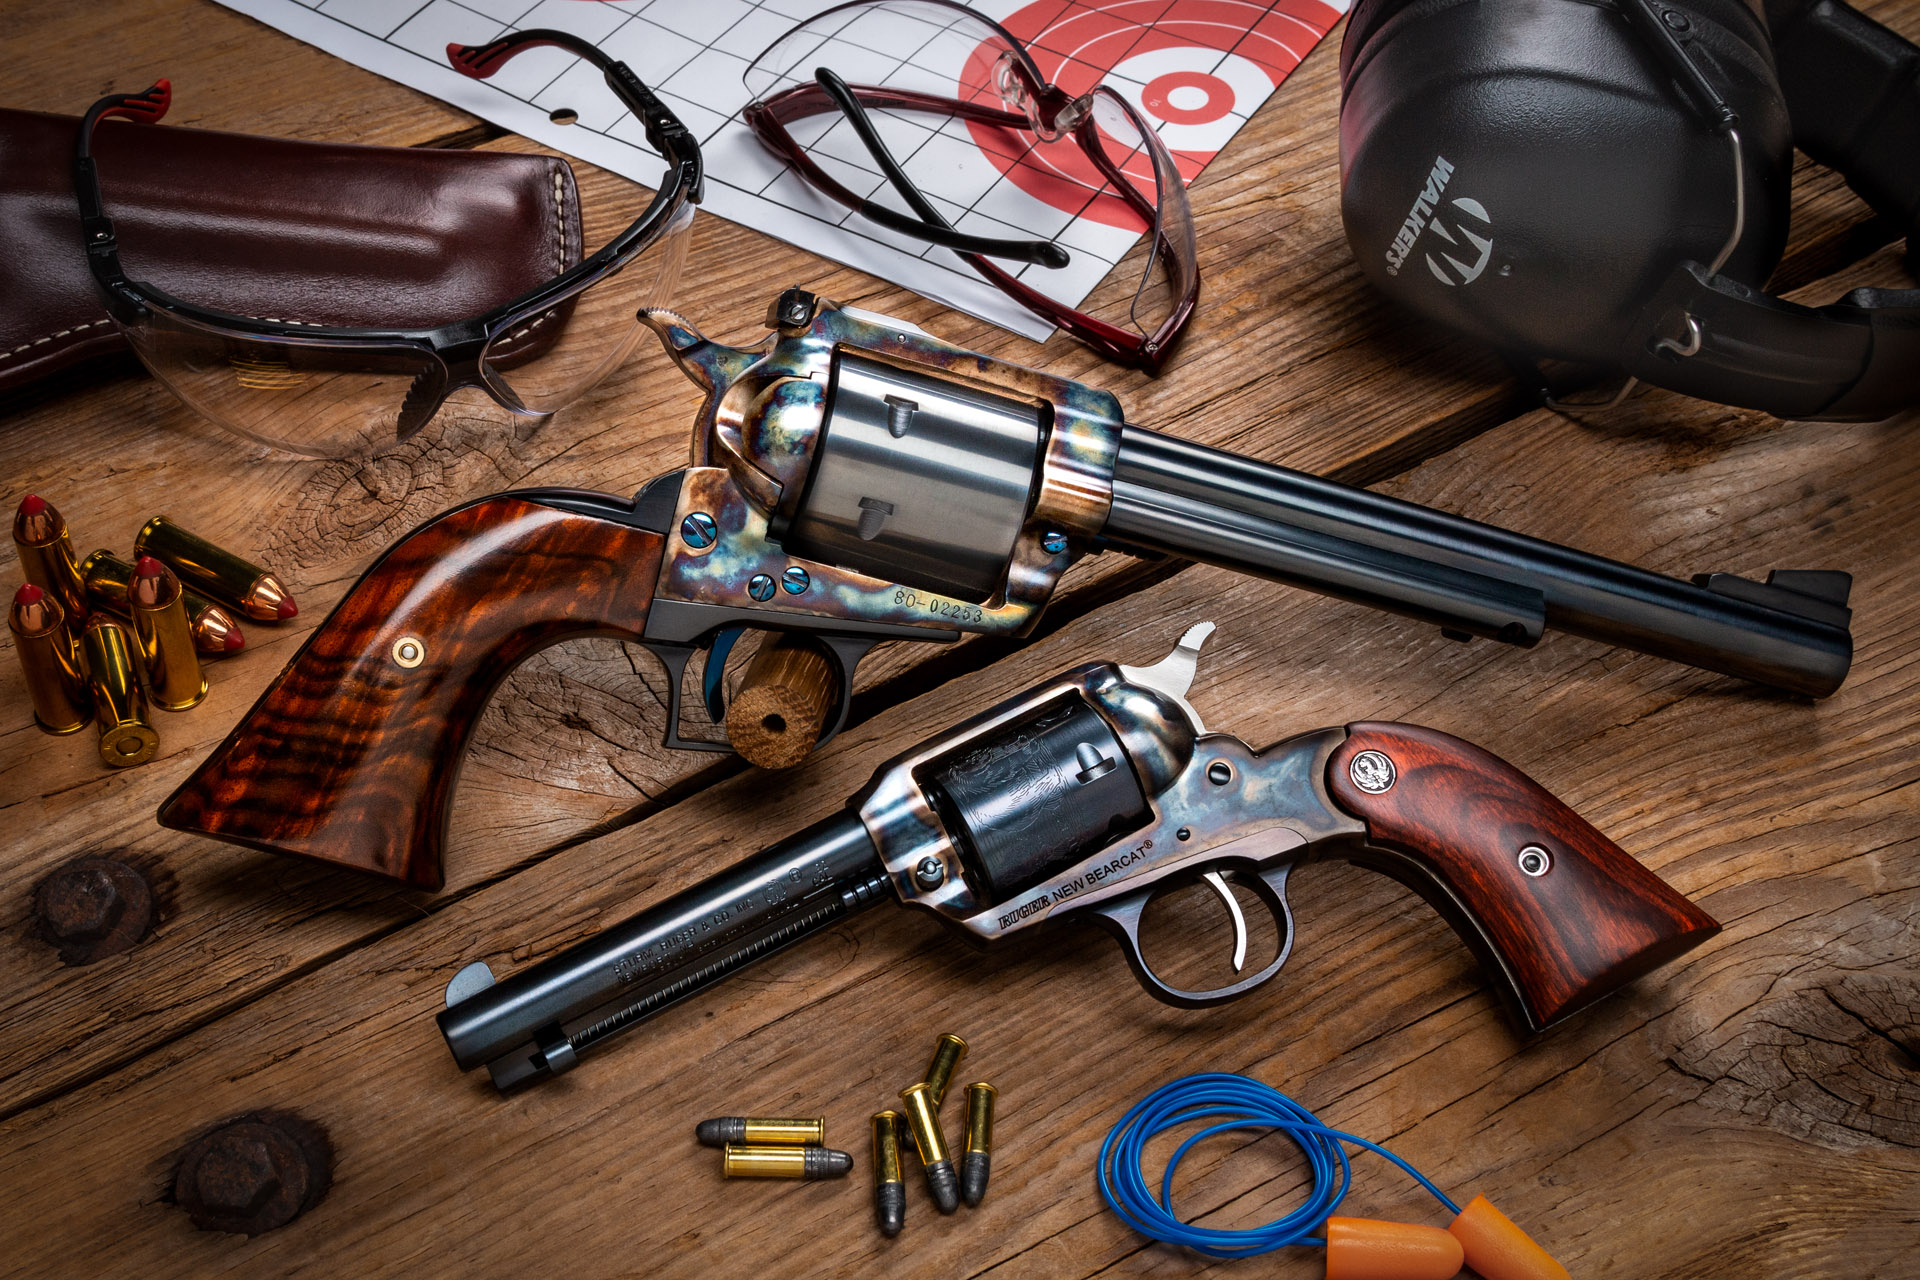 Photo of a Ruger Super Blackhawk and a Ruger New Bearcat, featuring bone charcoal color case hardening by Turnbull Restoration of Bloomfield NY